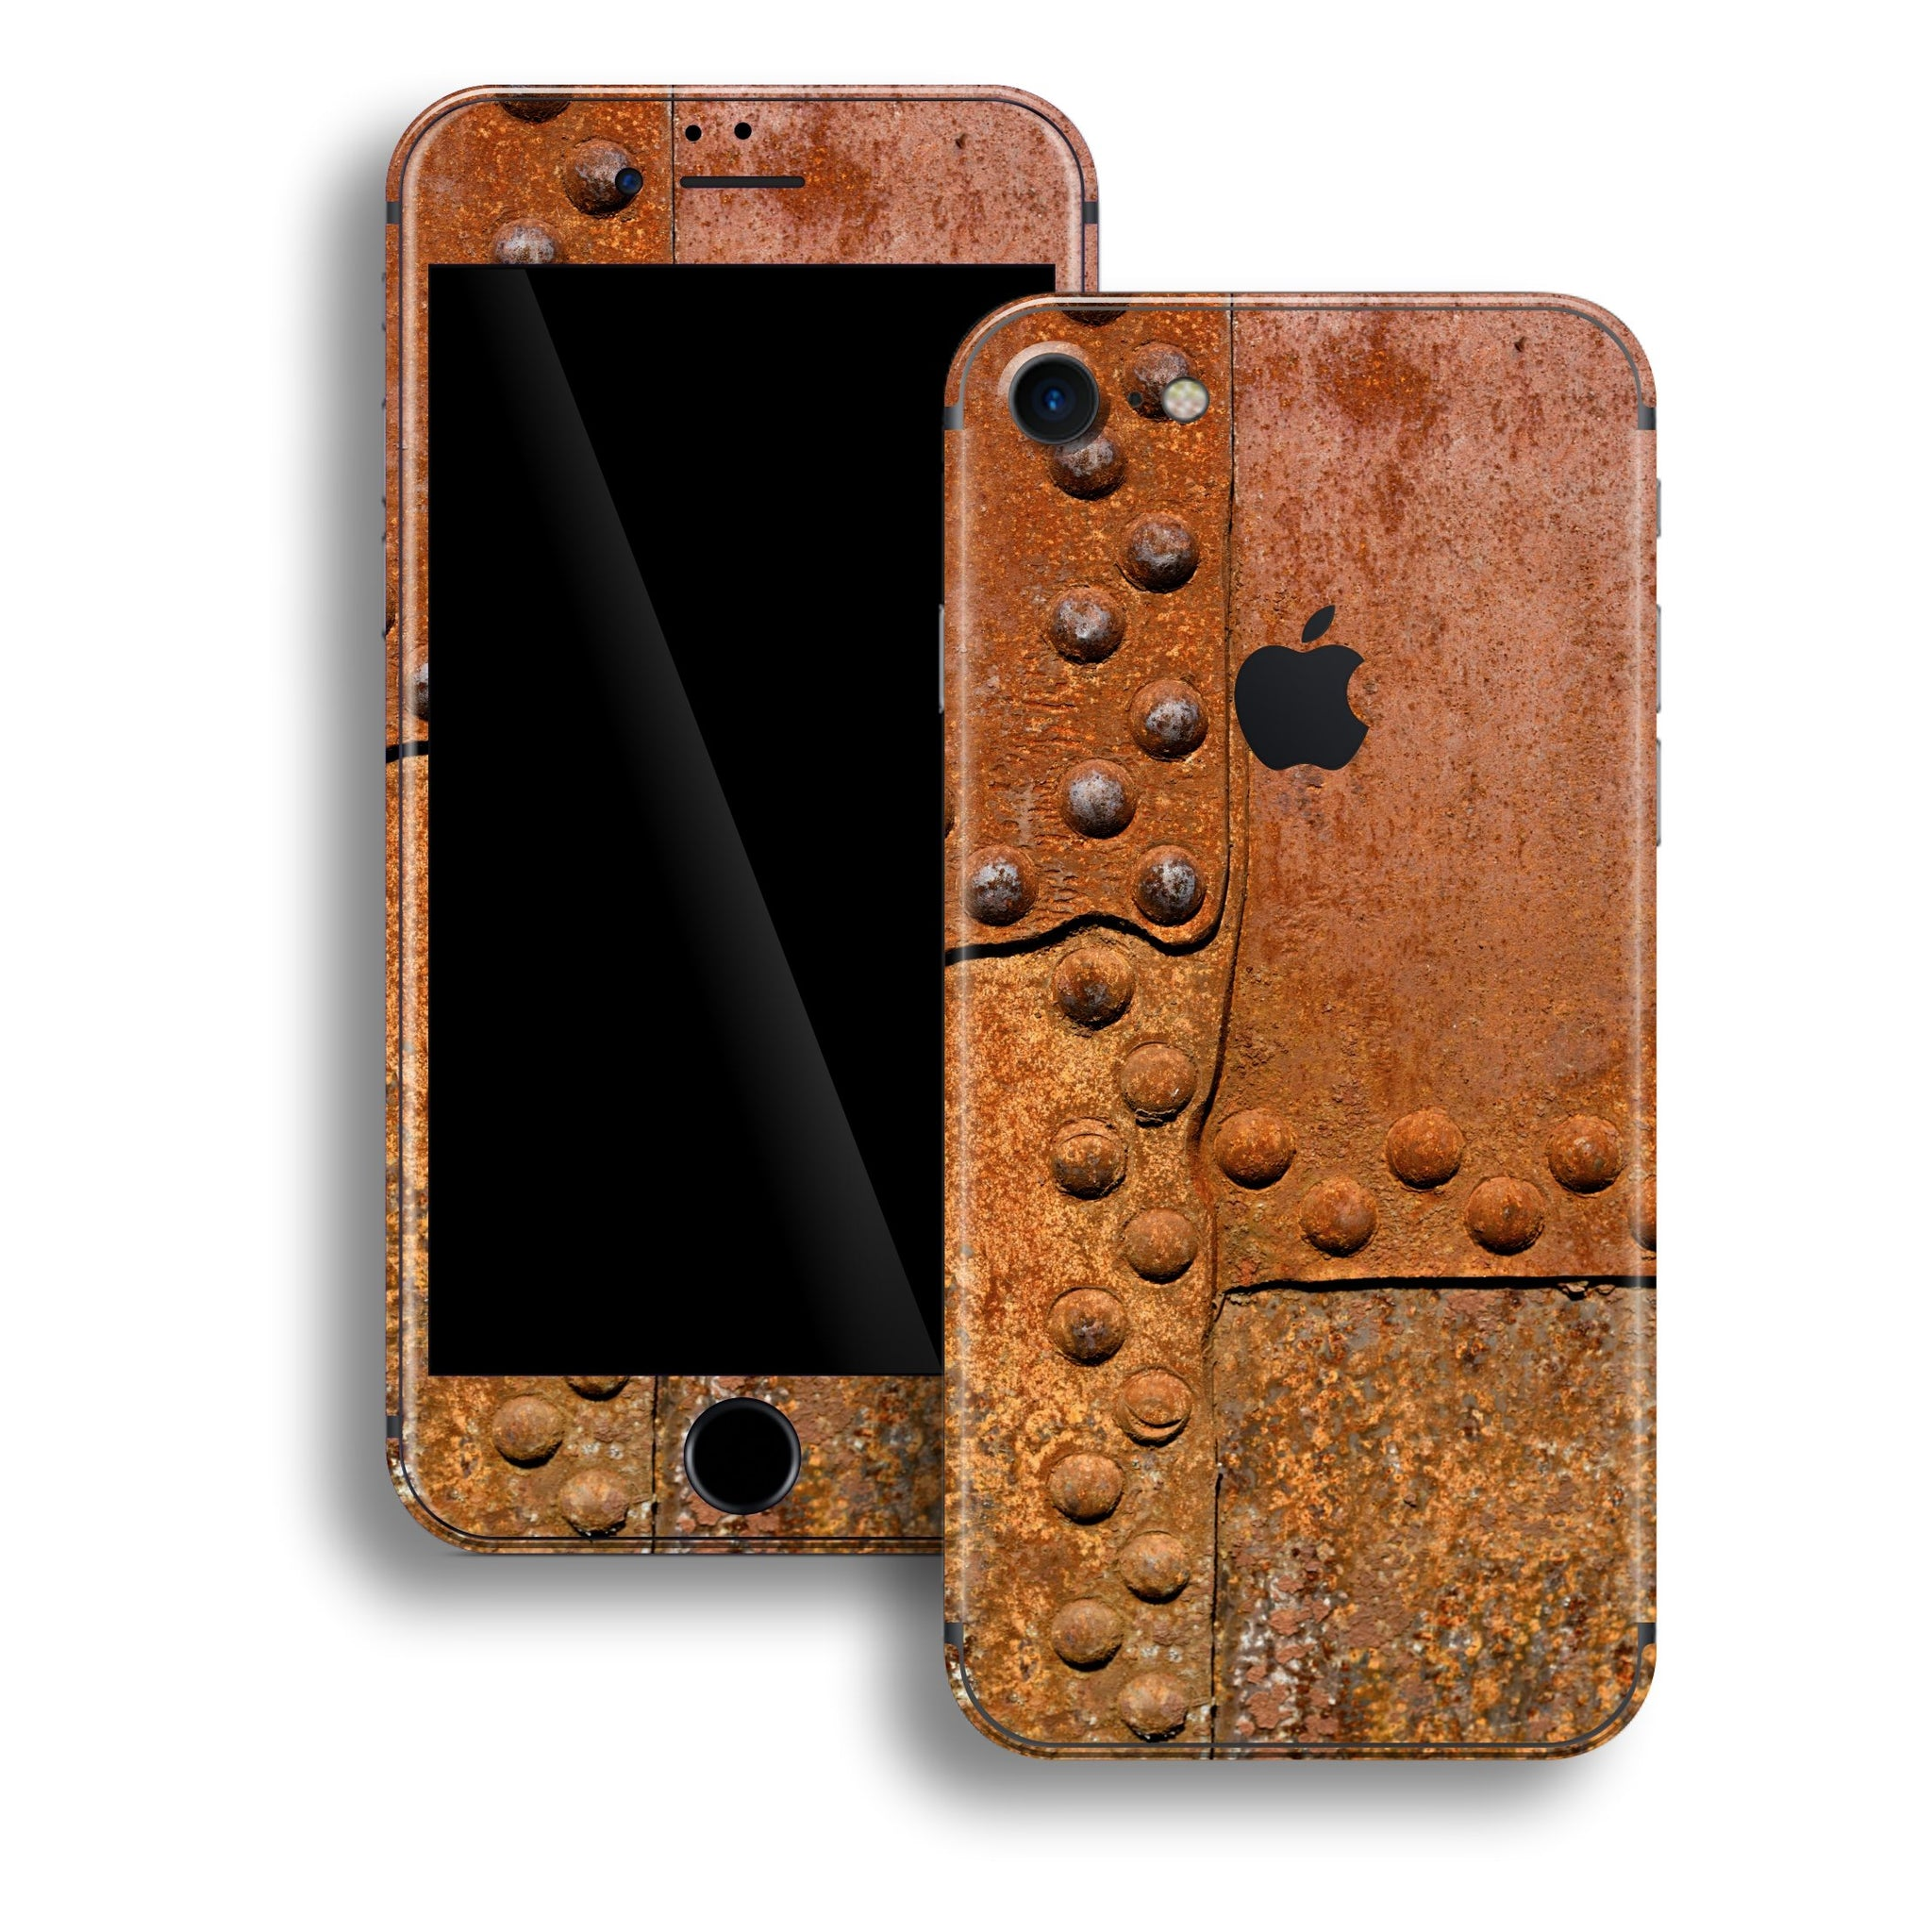 iPhone 8 Print Custom Signature Rust Skin Wrap Decal by EasySkinz